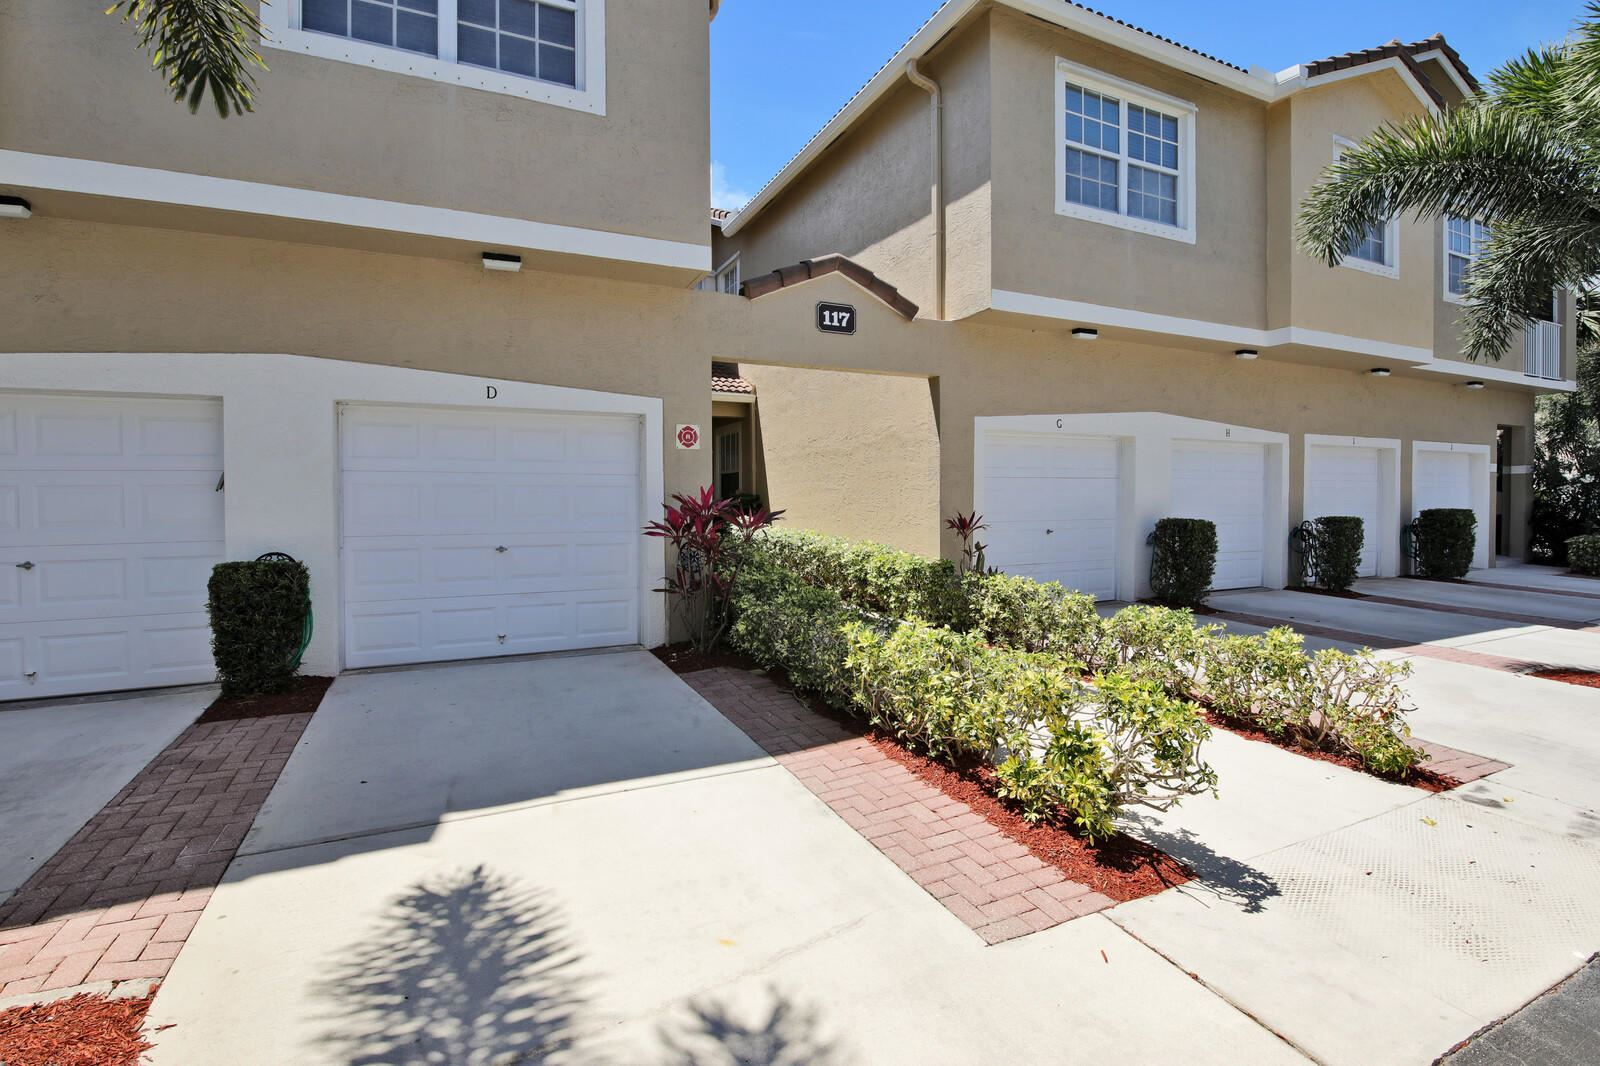 117 Lighthouse Circle #D, Tequesta, FL 33469 - #: RX-10704607